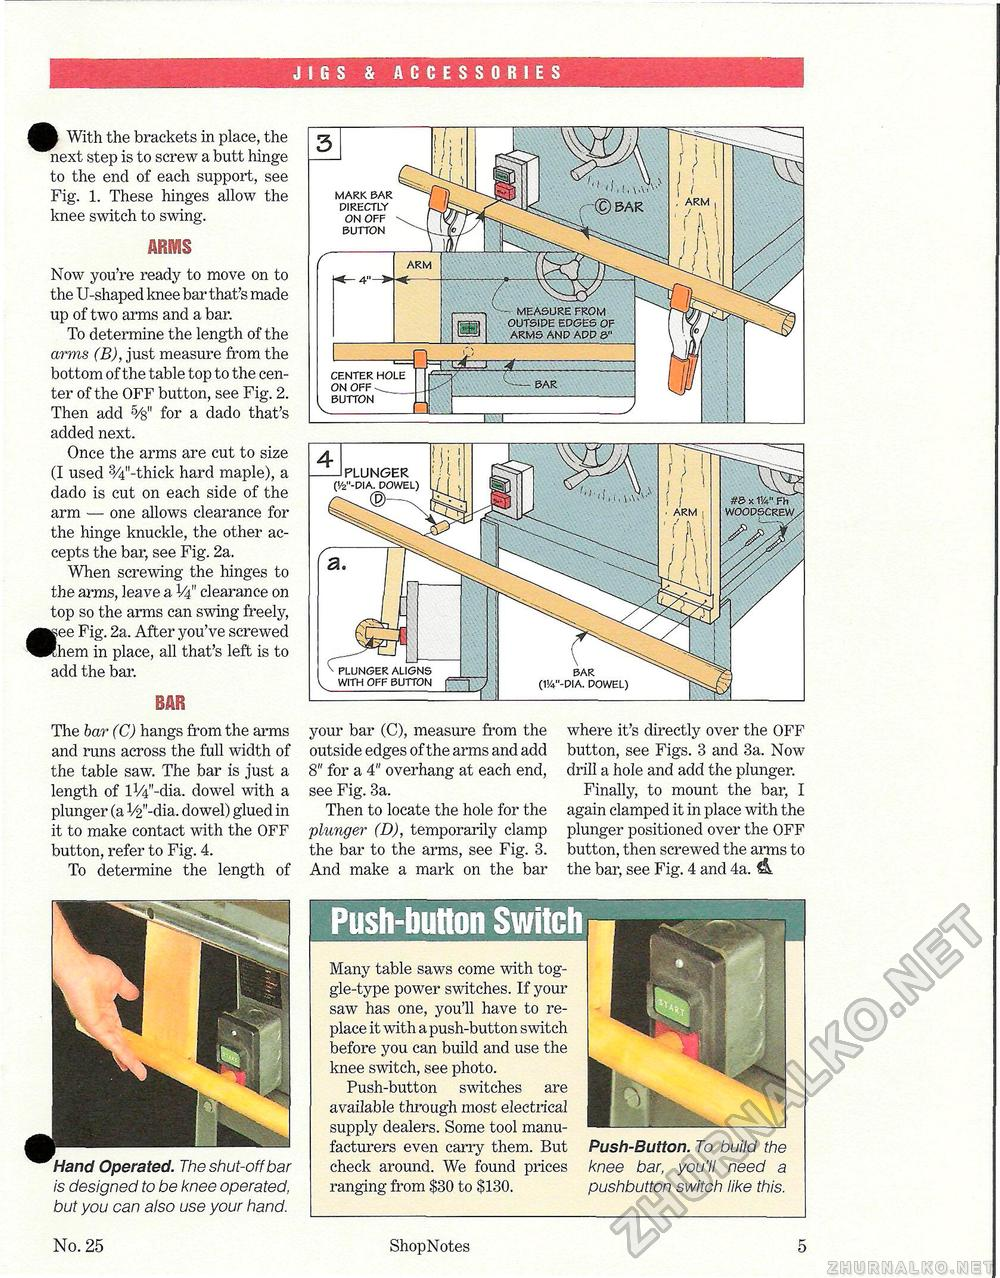 25 - Special Table Saw Issue, страница 5